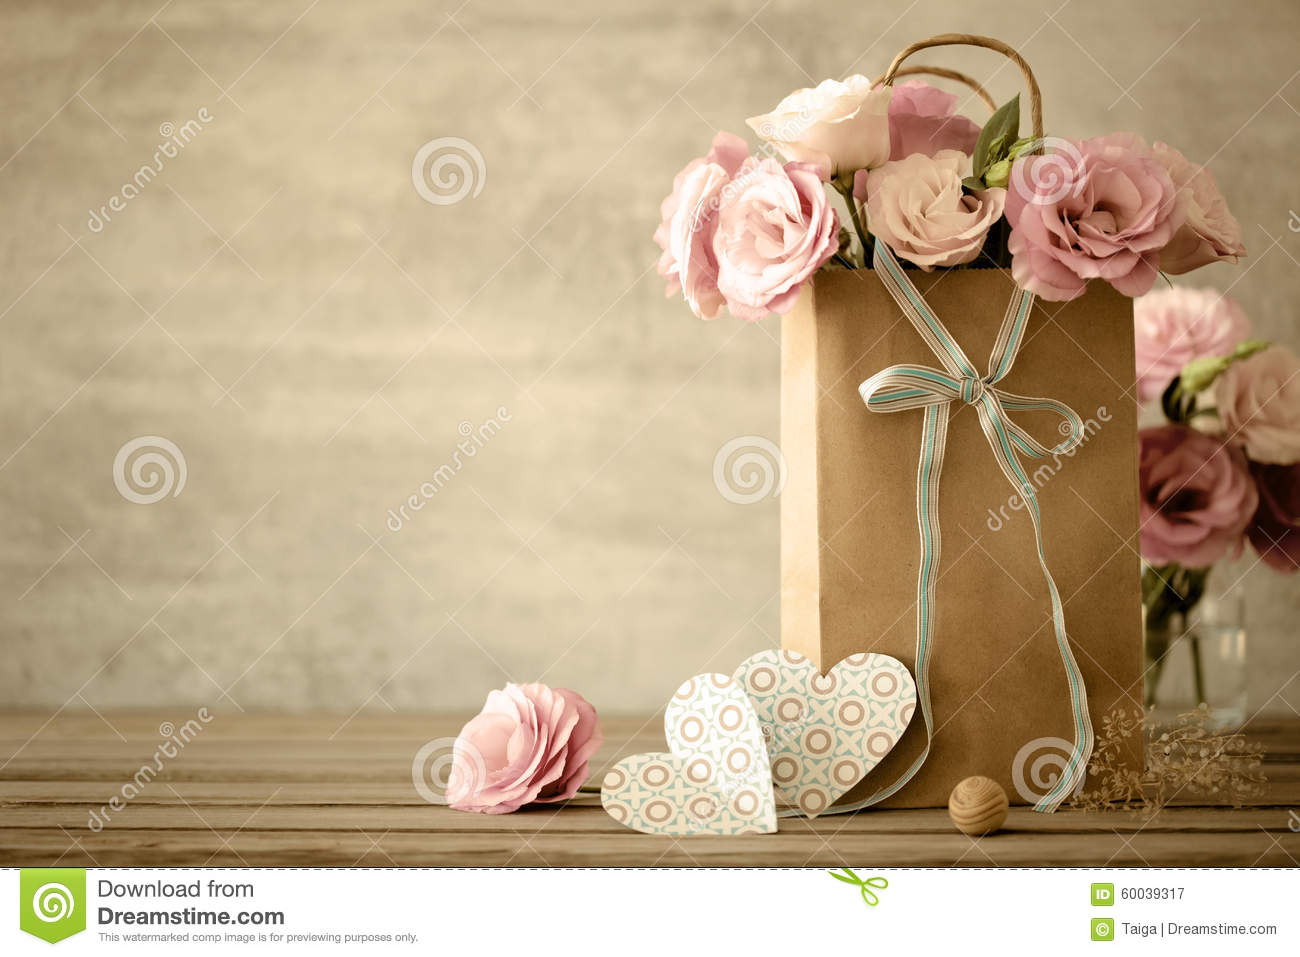 Love background with flowers and bow